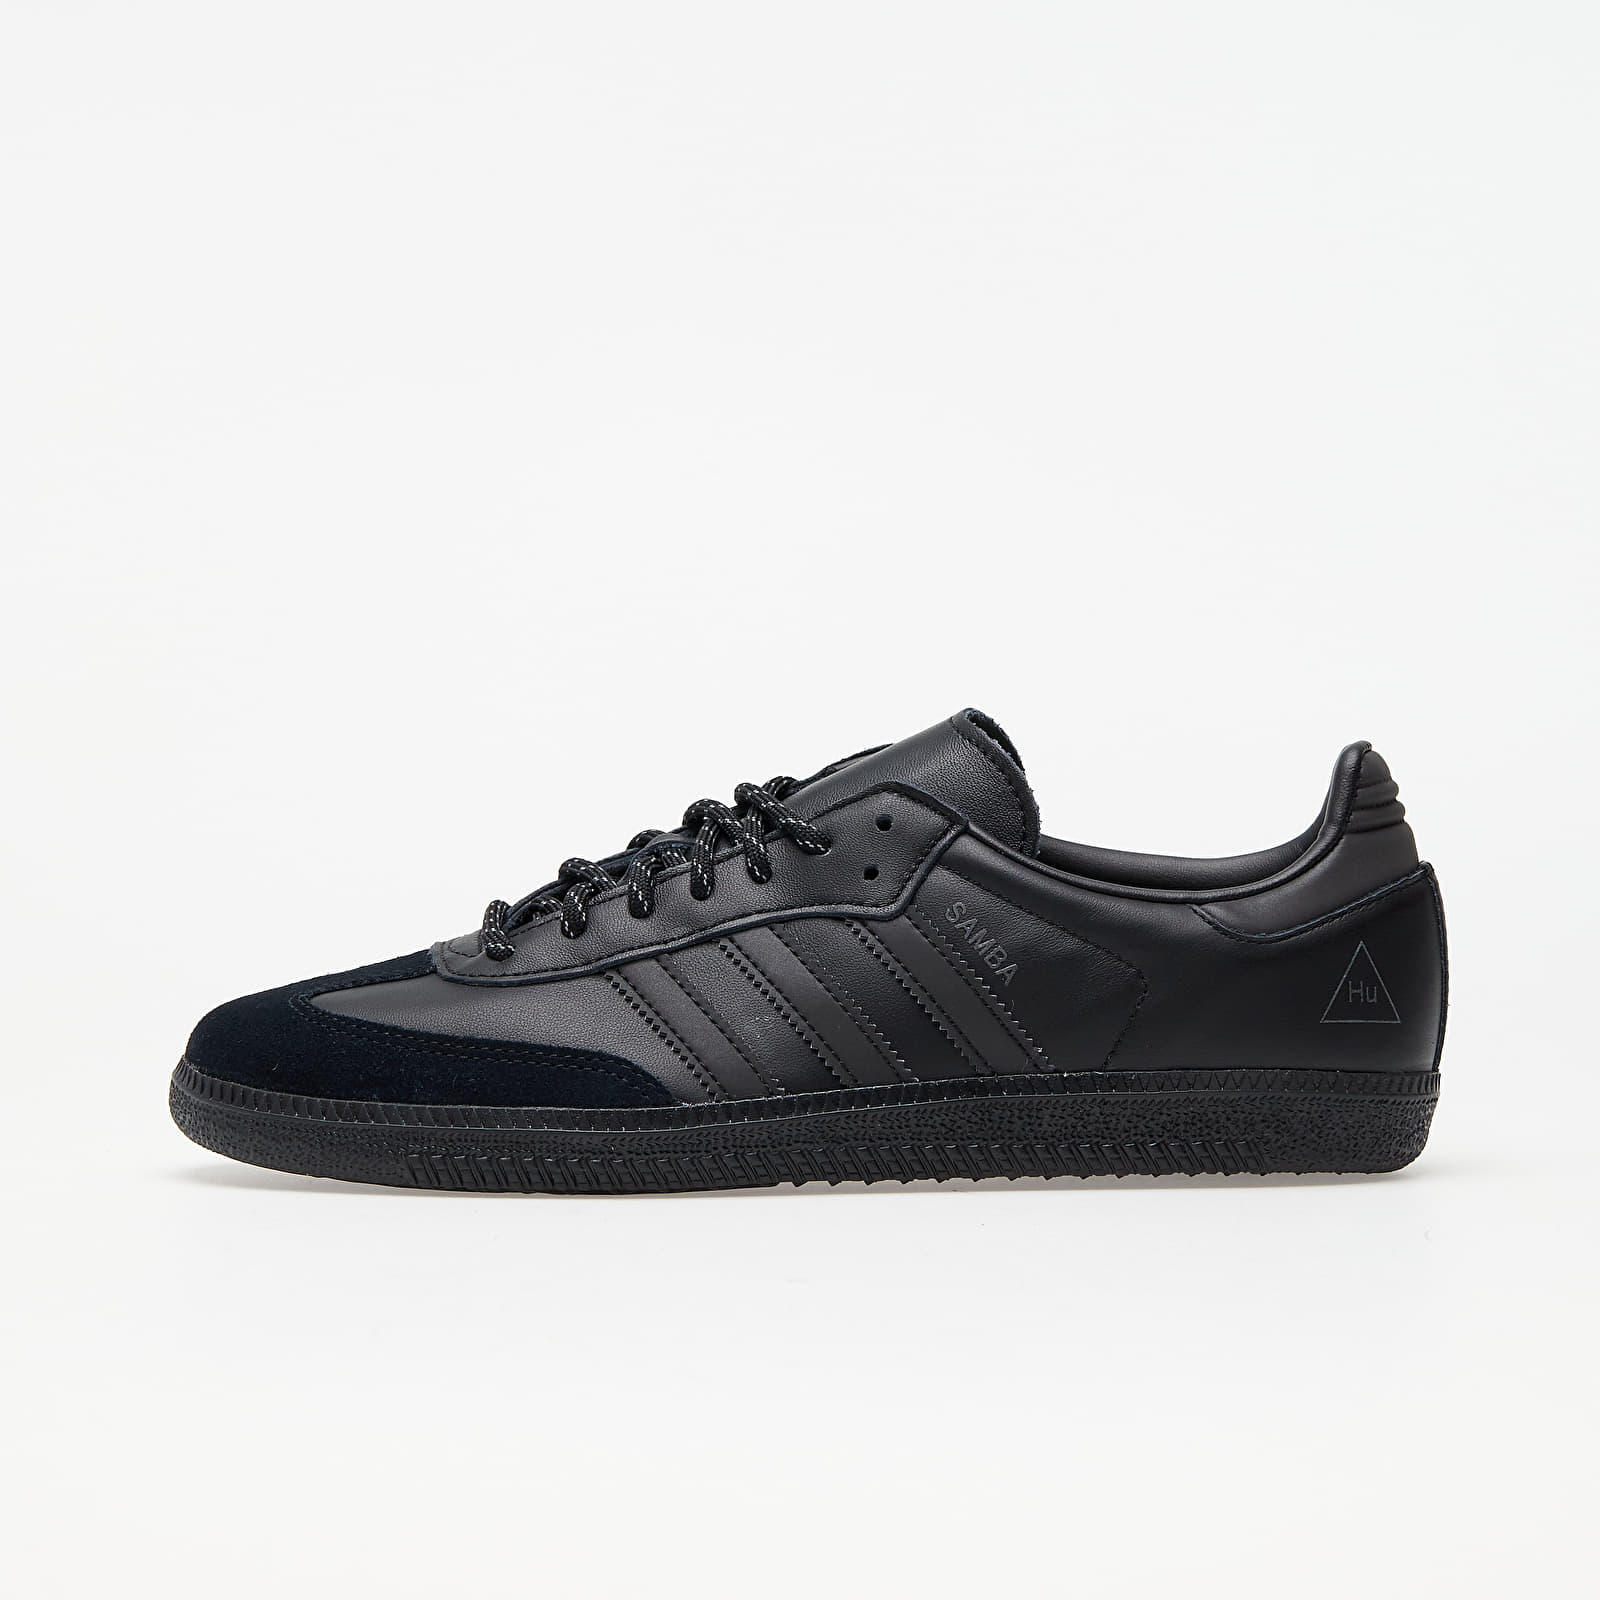 analogía creciendo Decorar  Men's shoes adidas x Pharrell Williams Samba Core Black/ Core Black/ Core  Black | Footshop